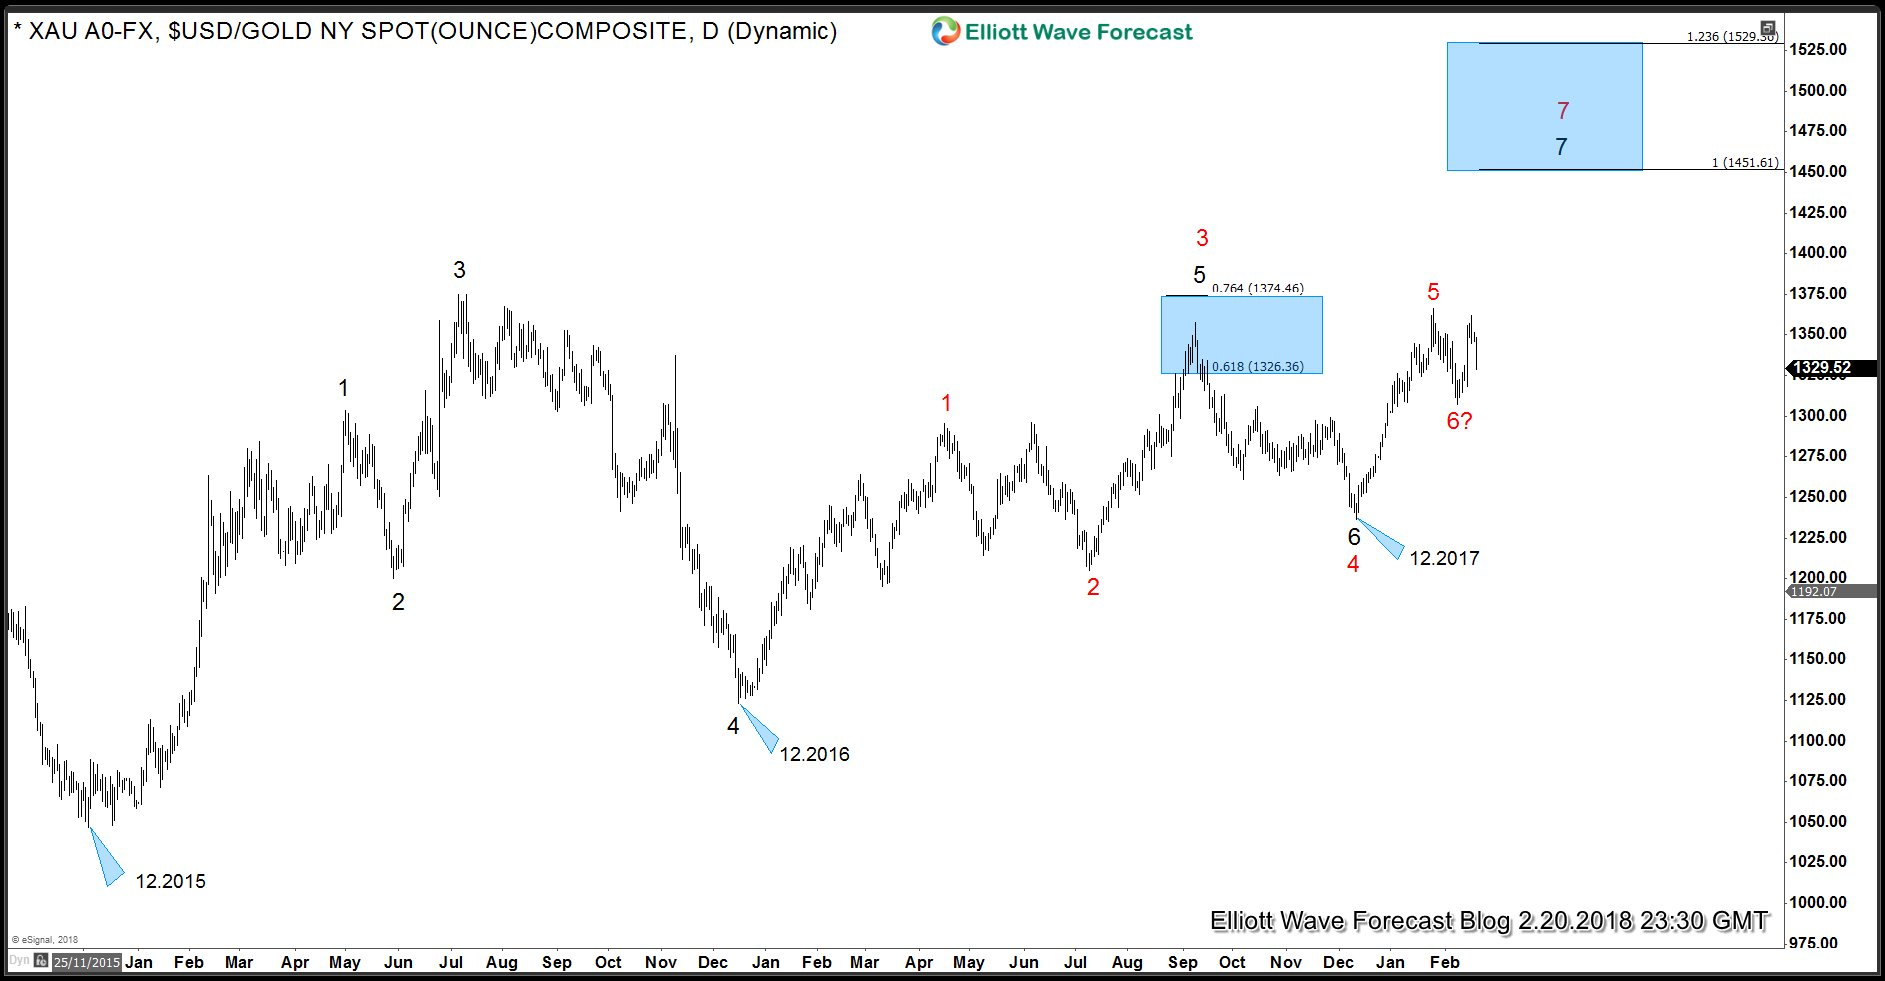 Gold Elliott Wave Swing Sequence from 12.2015 low